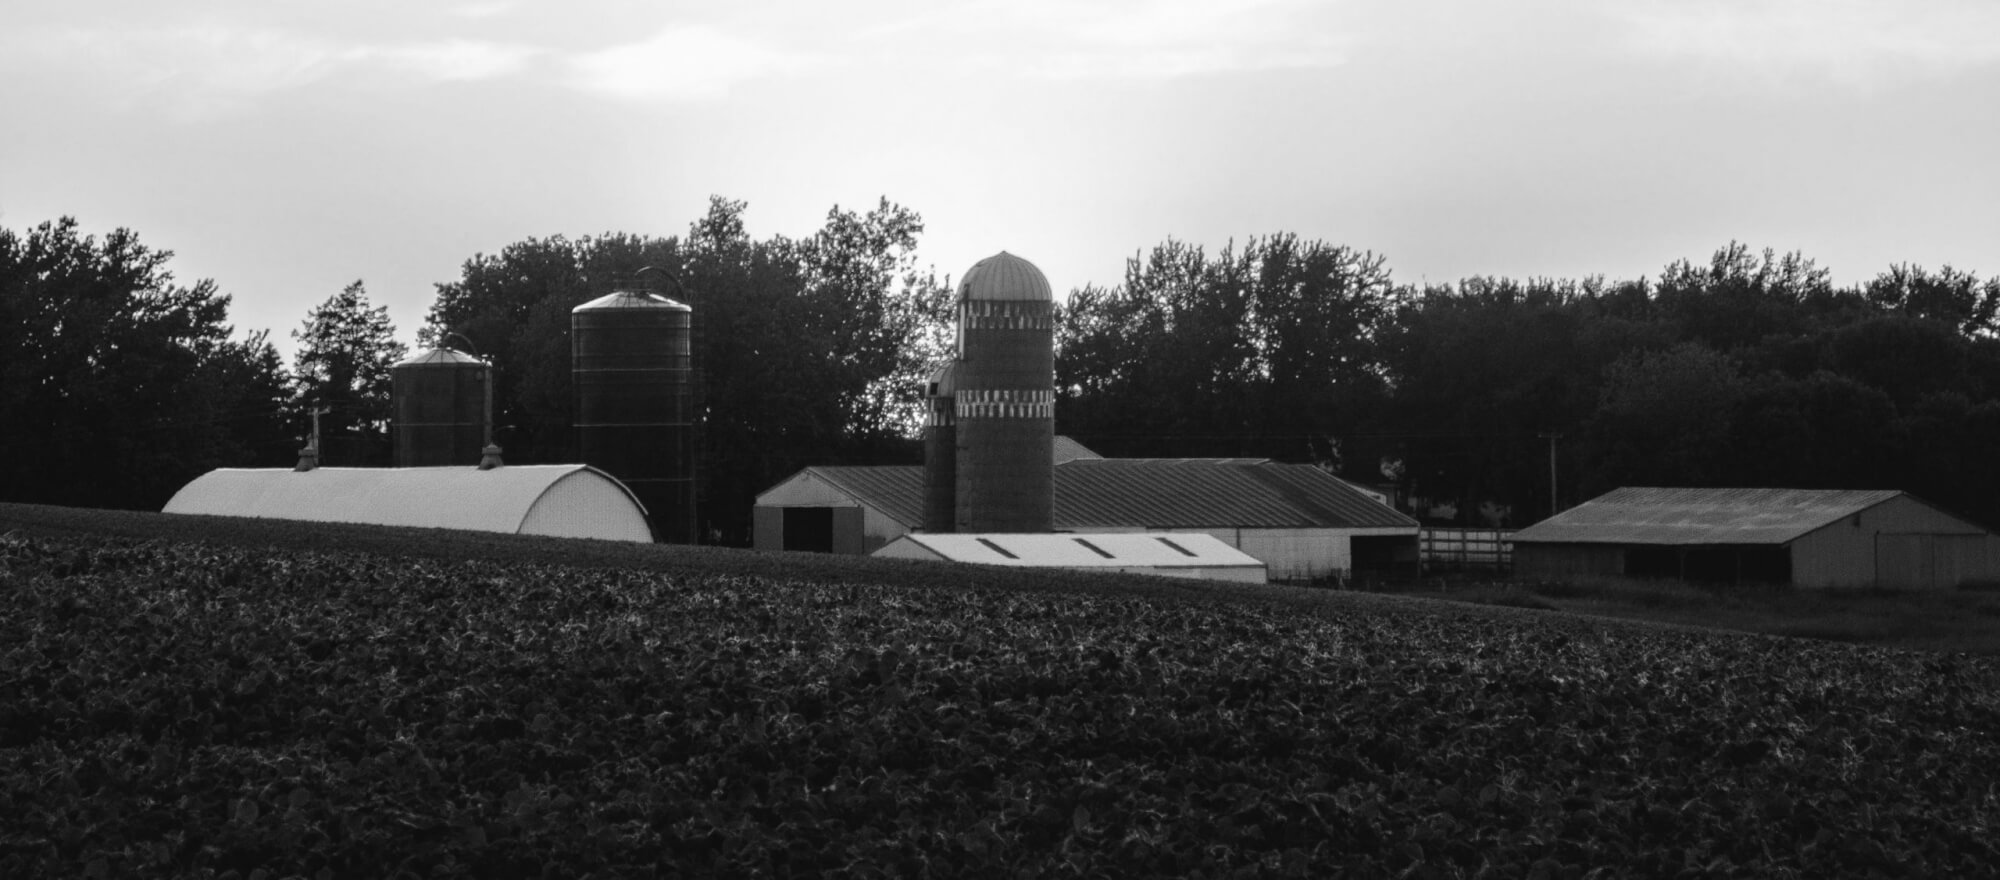 Panoramic photo of a farm with silos.